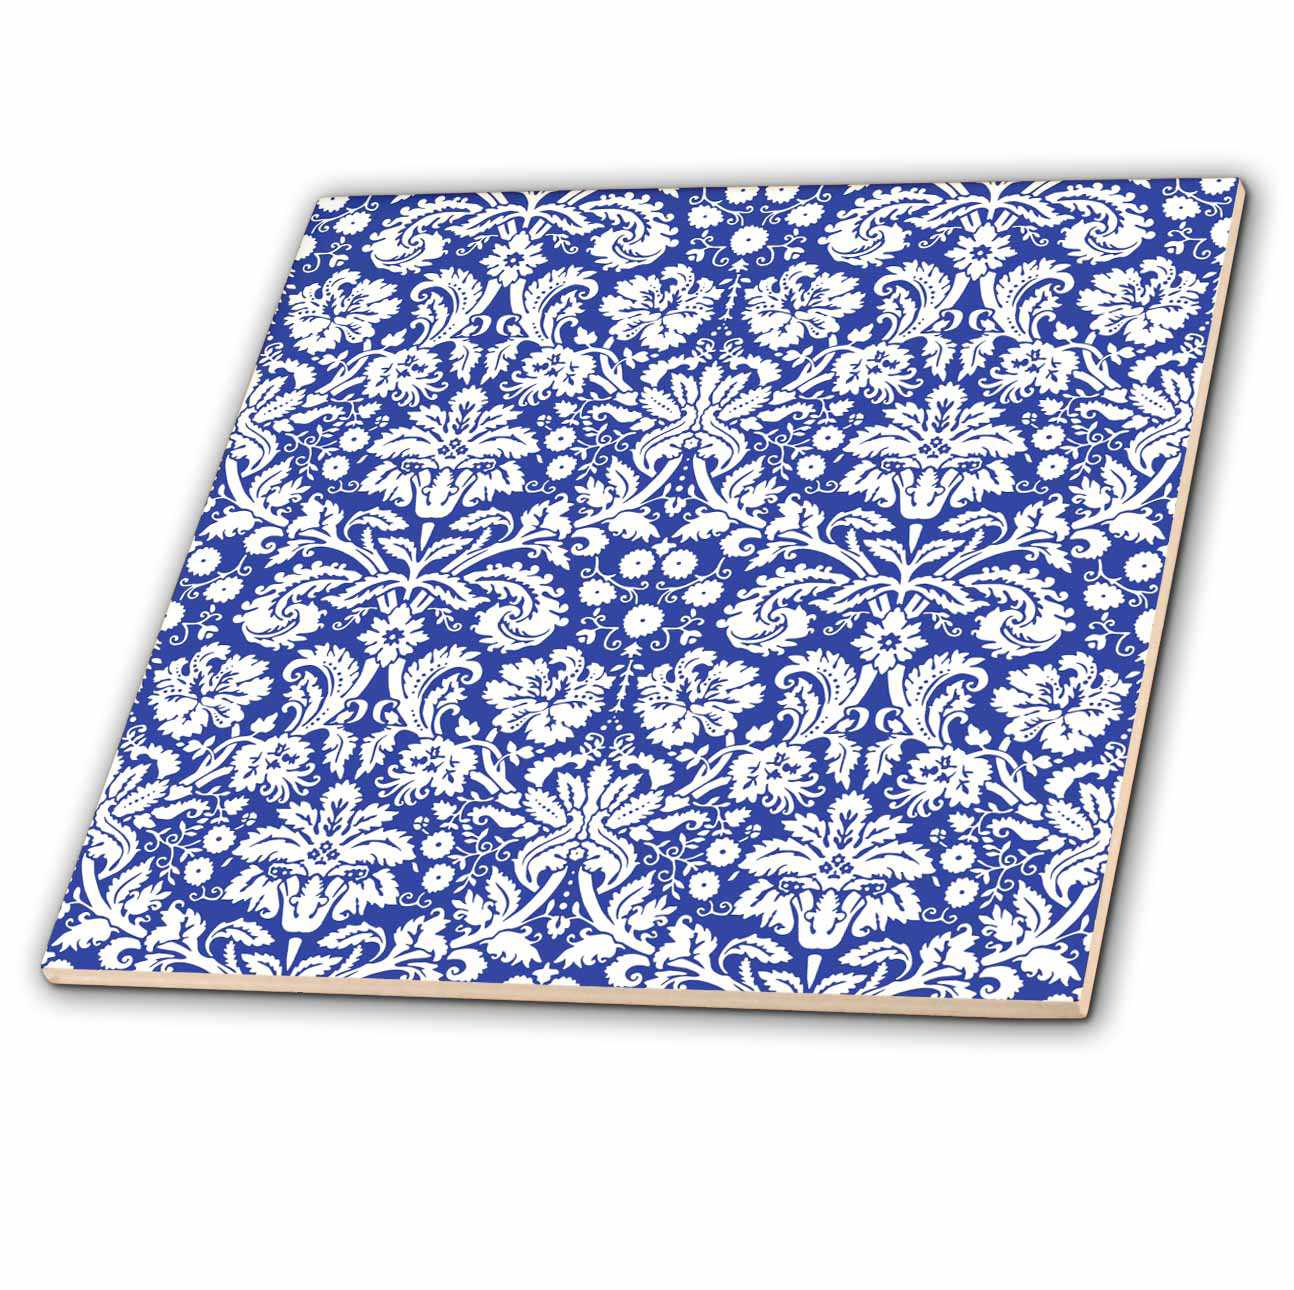 3dRose Royal blue and white damask pattern - stylish elegant Victorian vintage French floral swirls - navy - Ceramic Tile, 4-inch